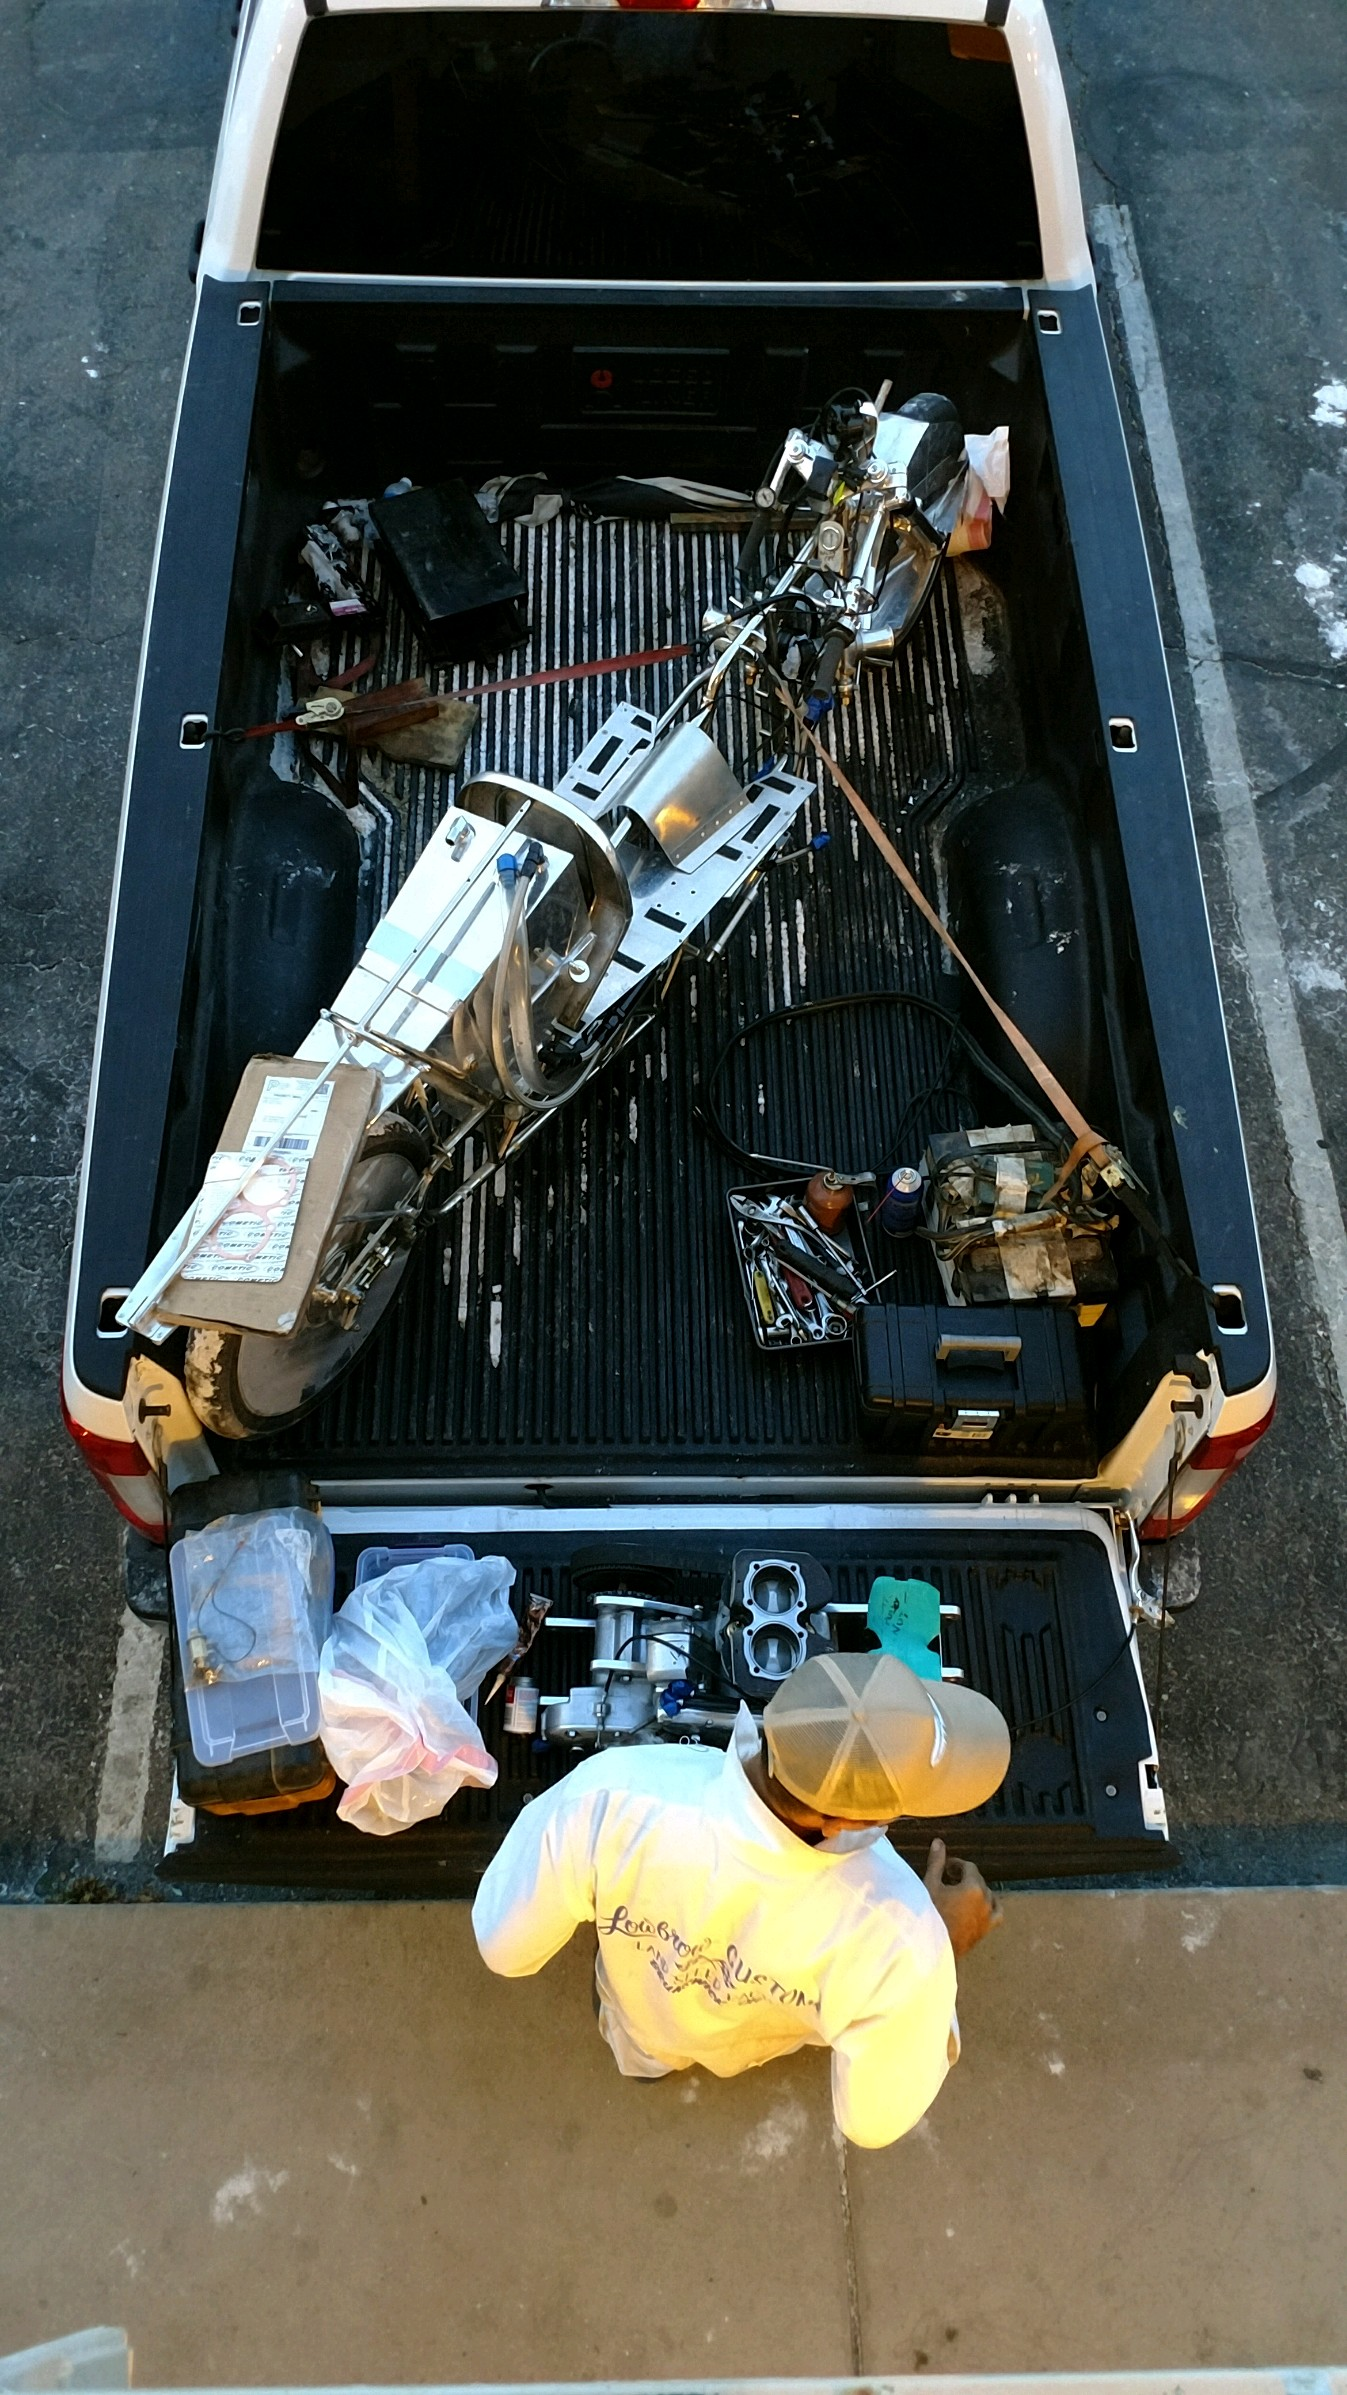 This Is Bonneville: Rebuilding An Amazing Motorcycle In The Bed Of A Truck Sitting In Front Of A Motel 6 Hotel Room